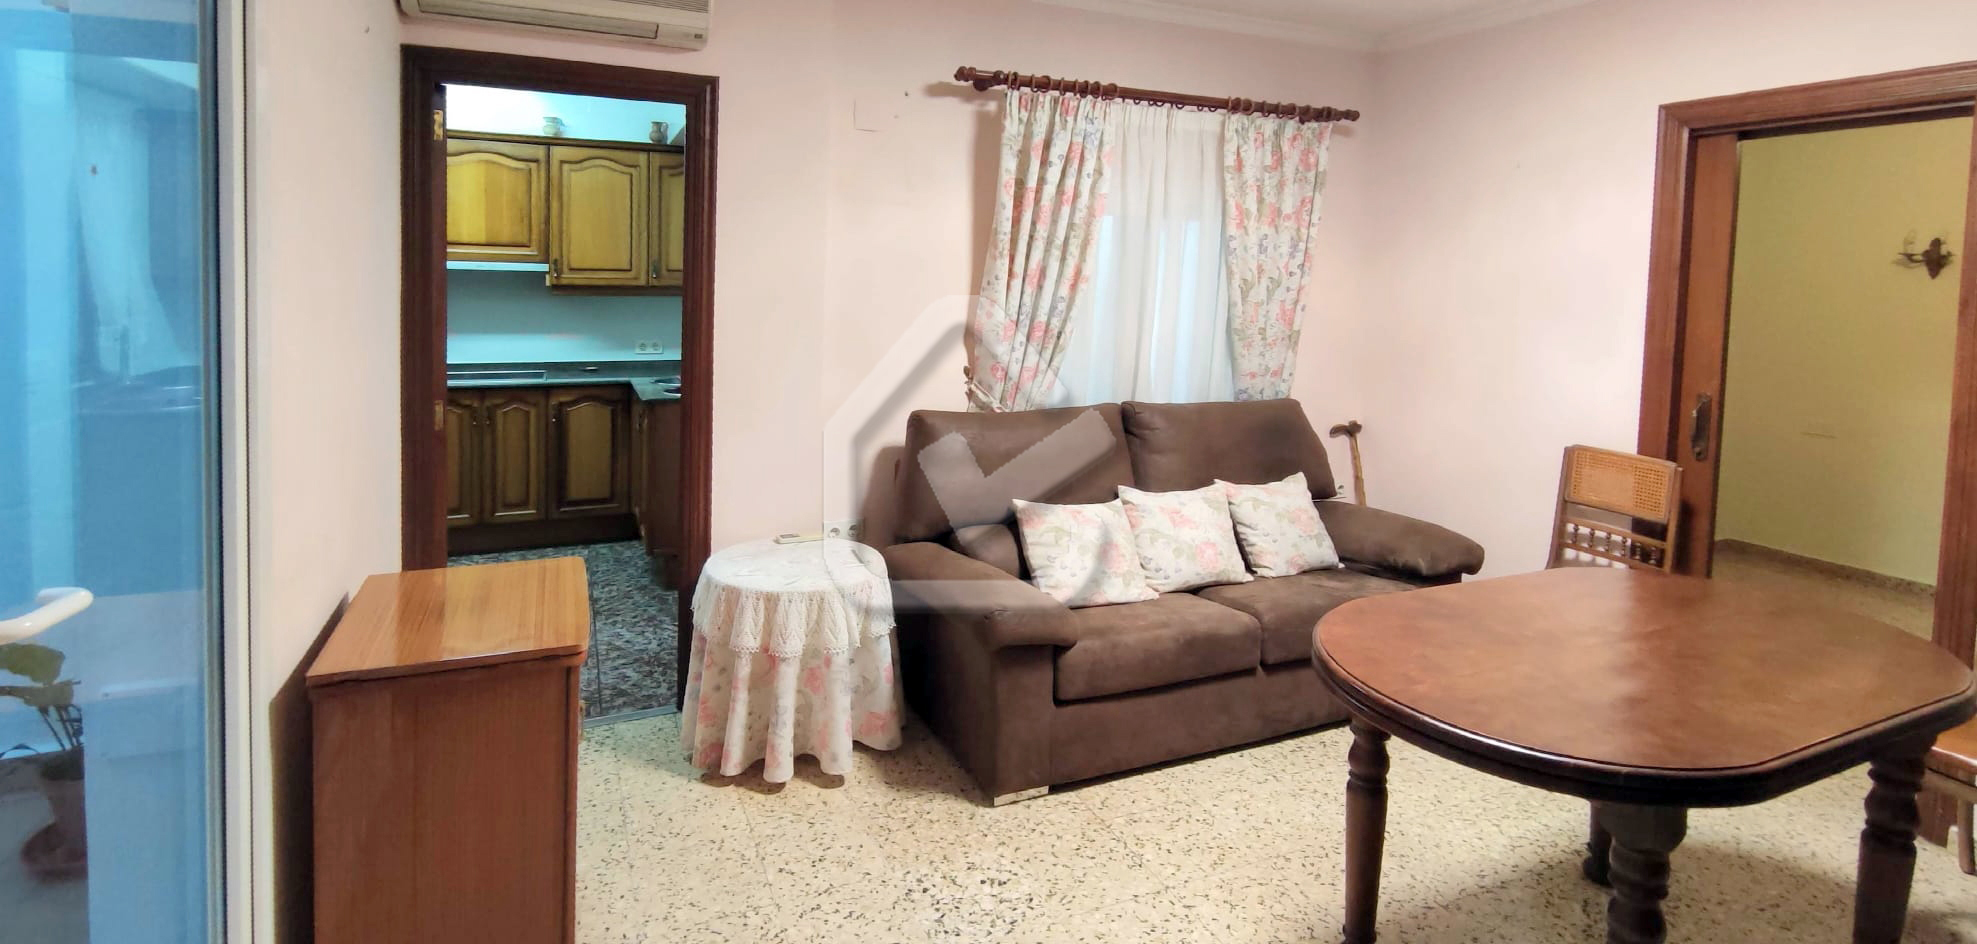 Photo  number 2: Flat / Apartment in Sale in Denia, Area Casco urbano, Sector Centro. Ref. 5-40-14951